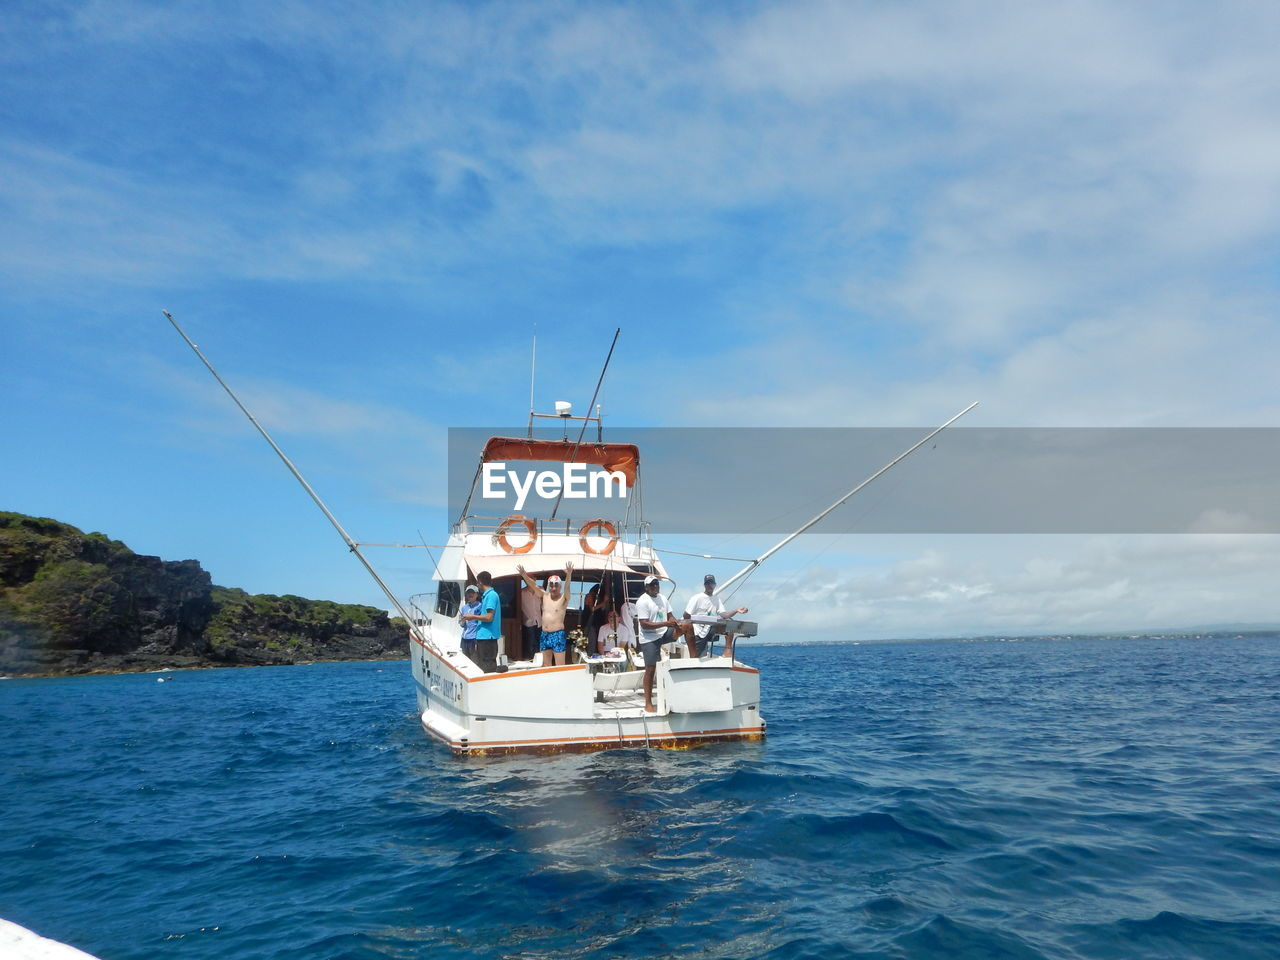 sea, sky, nature, real people, horizon over water, water, cloud - sky, leisure activity, men, day, scenics, outdoors, beauty in nature, transportation, vacations, togetherness, nautical vessel, people